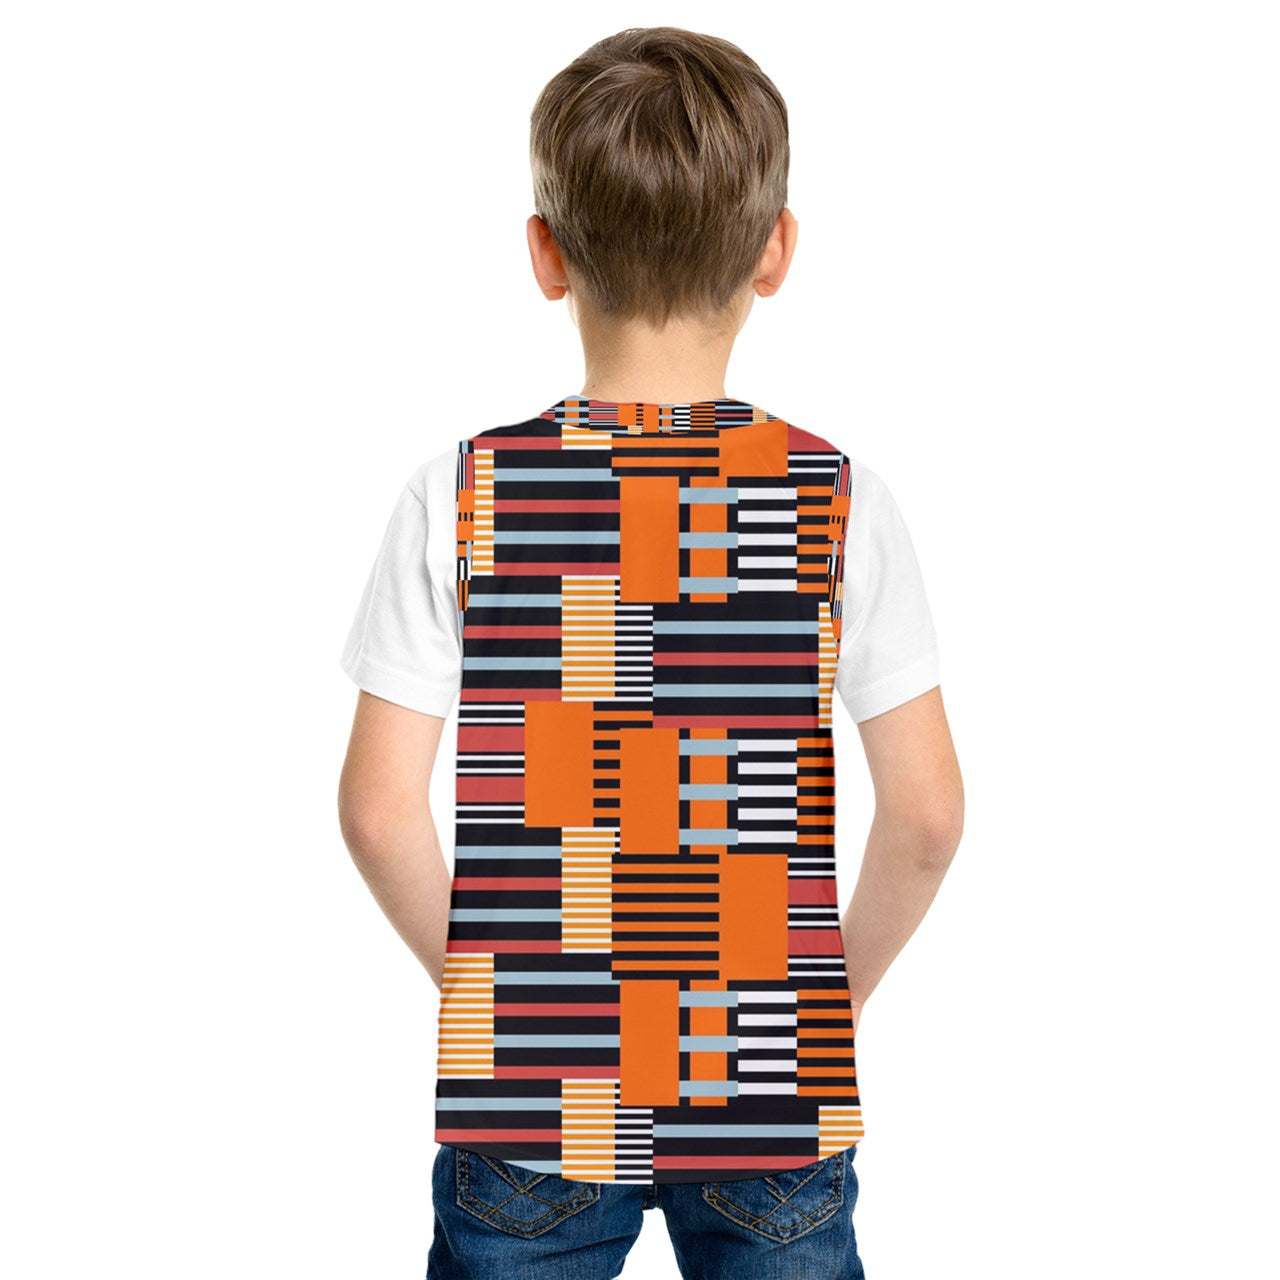 DDIIRO Kids' Basketball Tank Top